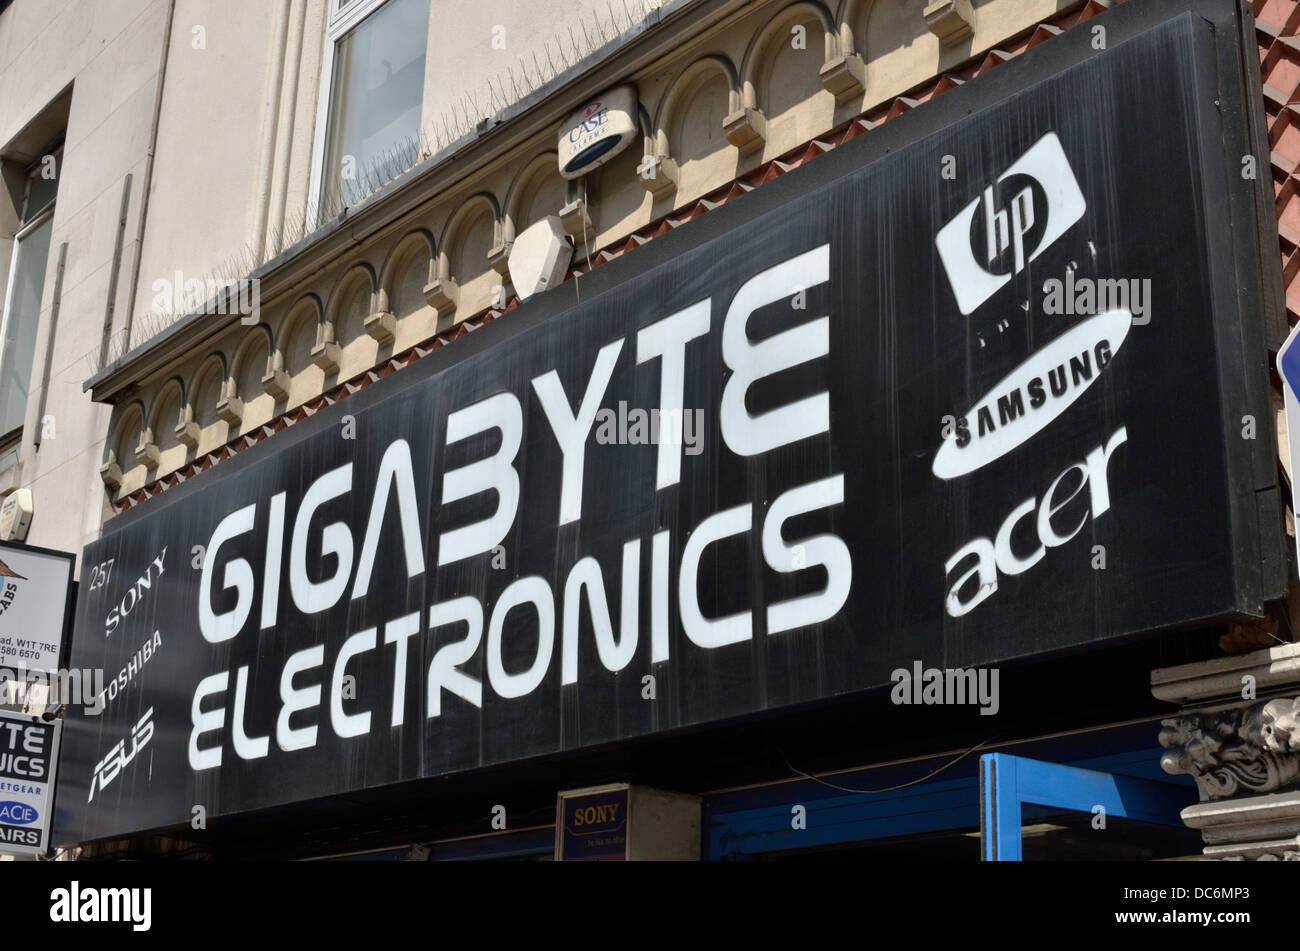 Gigabyte Electronics sign logo outside an an electronics store in Stock Photo: 59154987 - Alamy